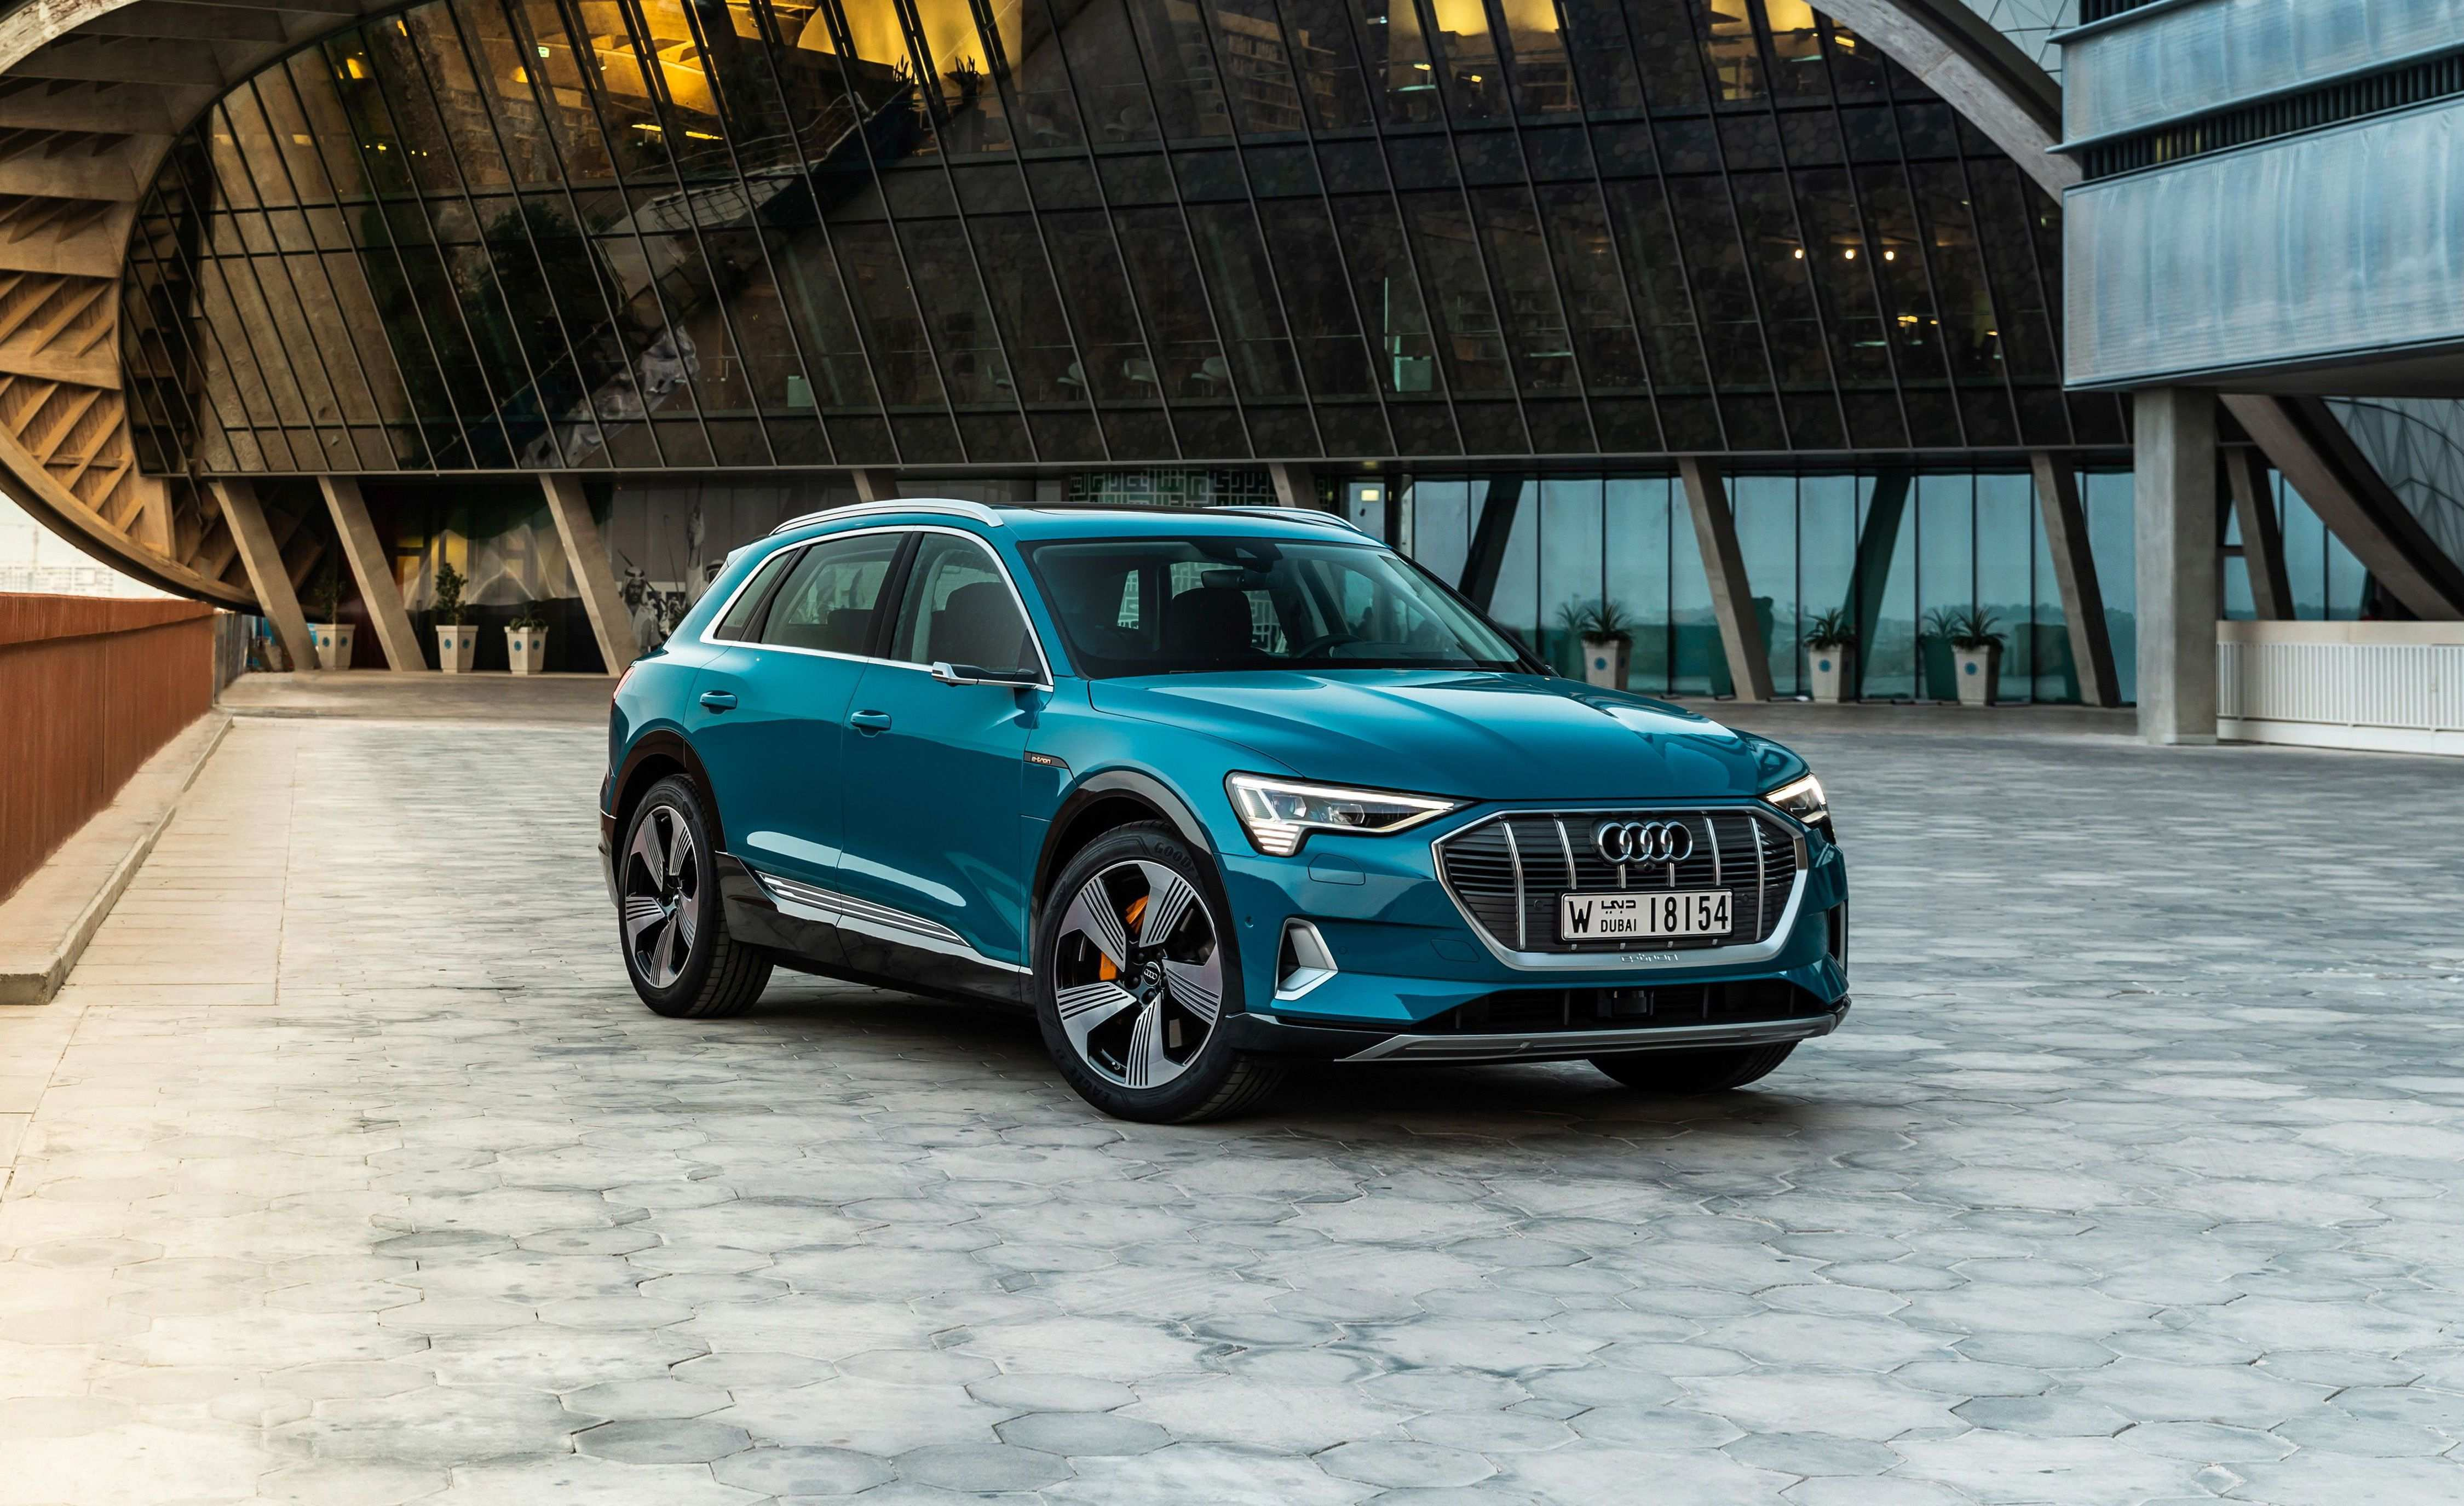 97 Best Review Audi G Tron 2020 Exterior and Interior with Audi G Tron 2020